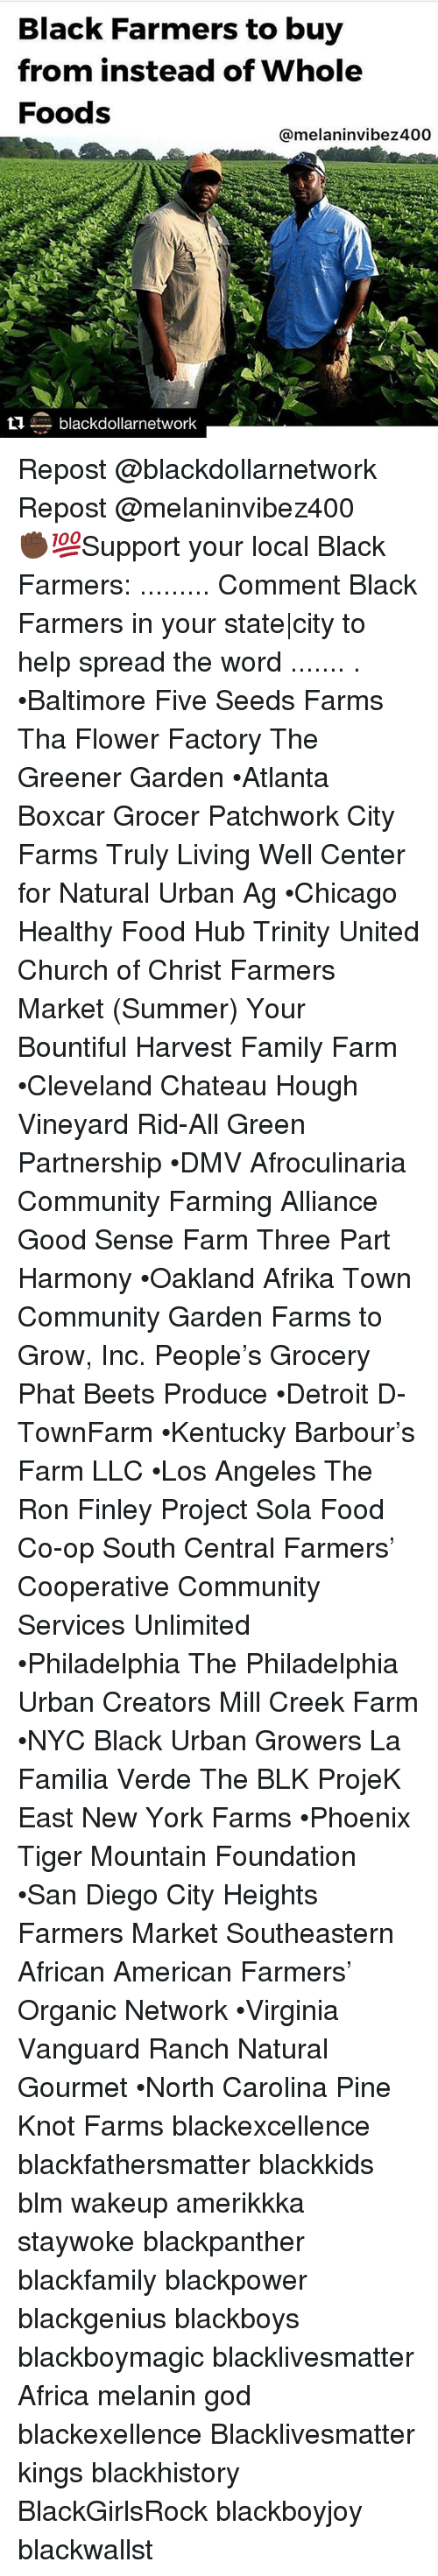 Africa blackhistory and black lives matter black farmers to buy from instead of